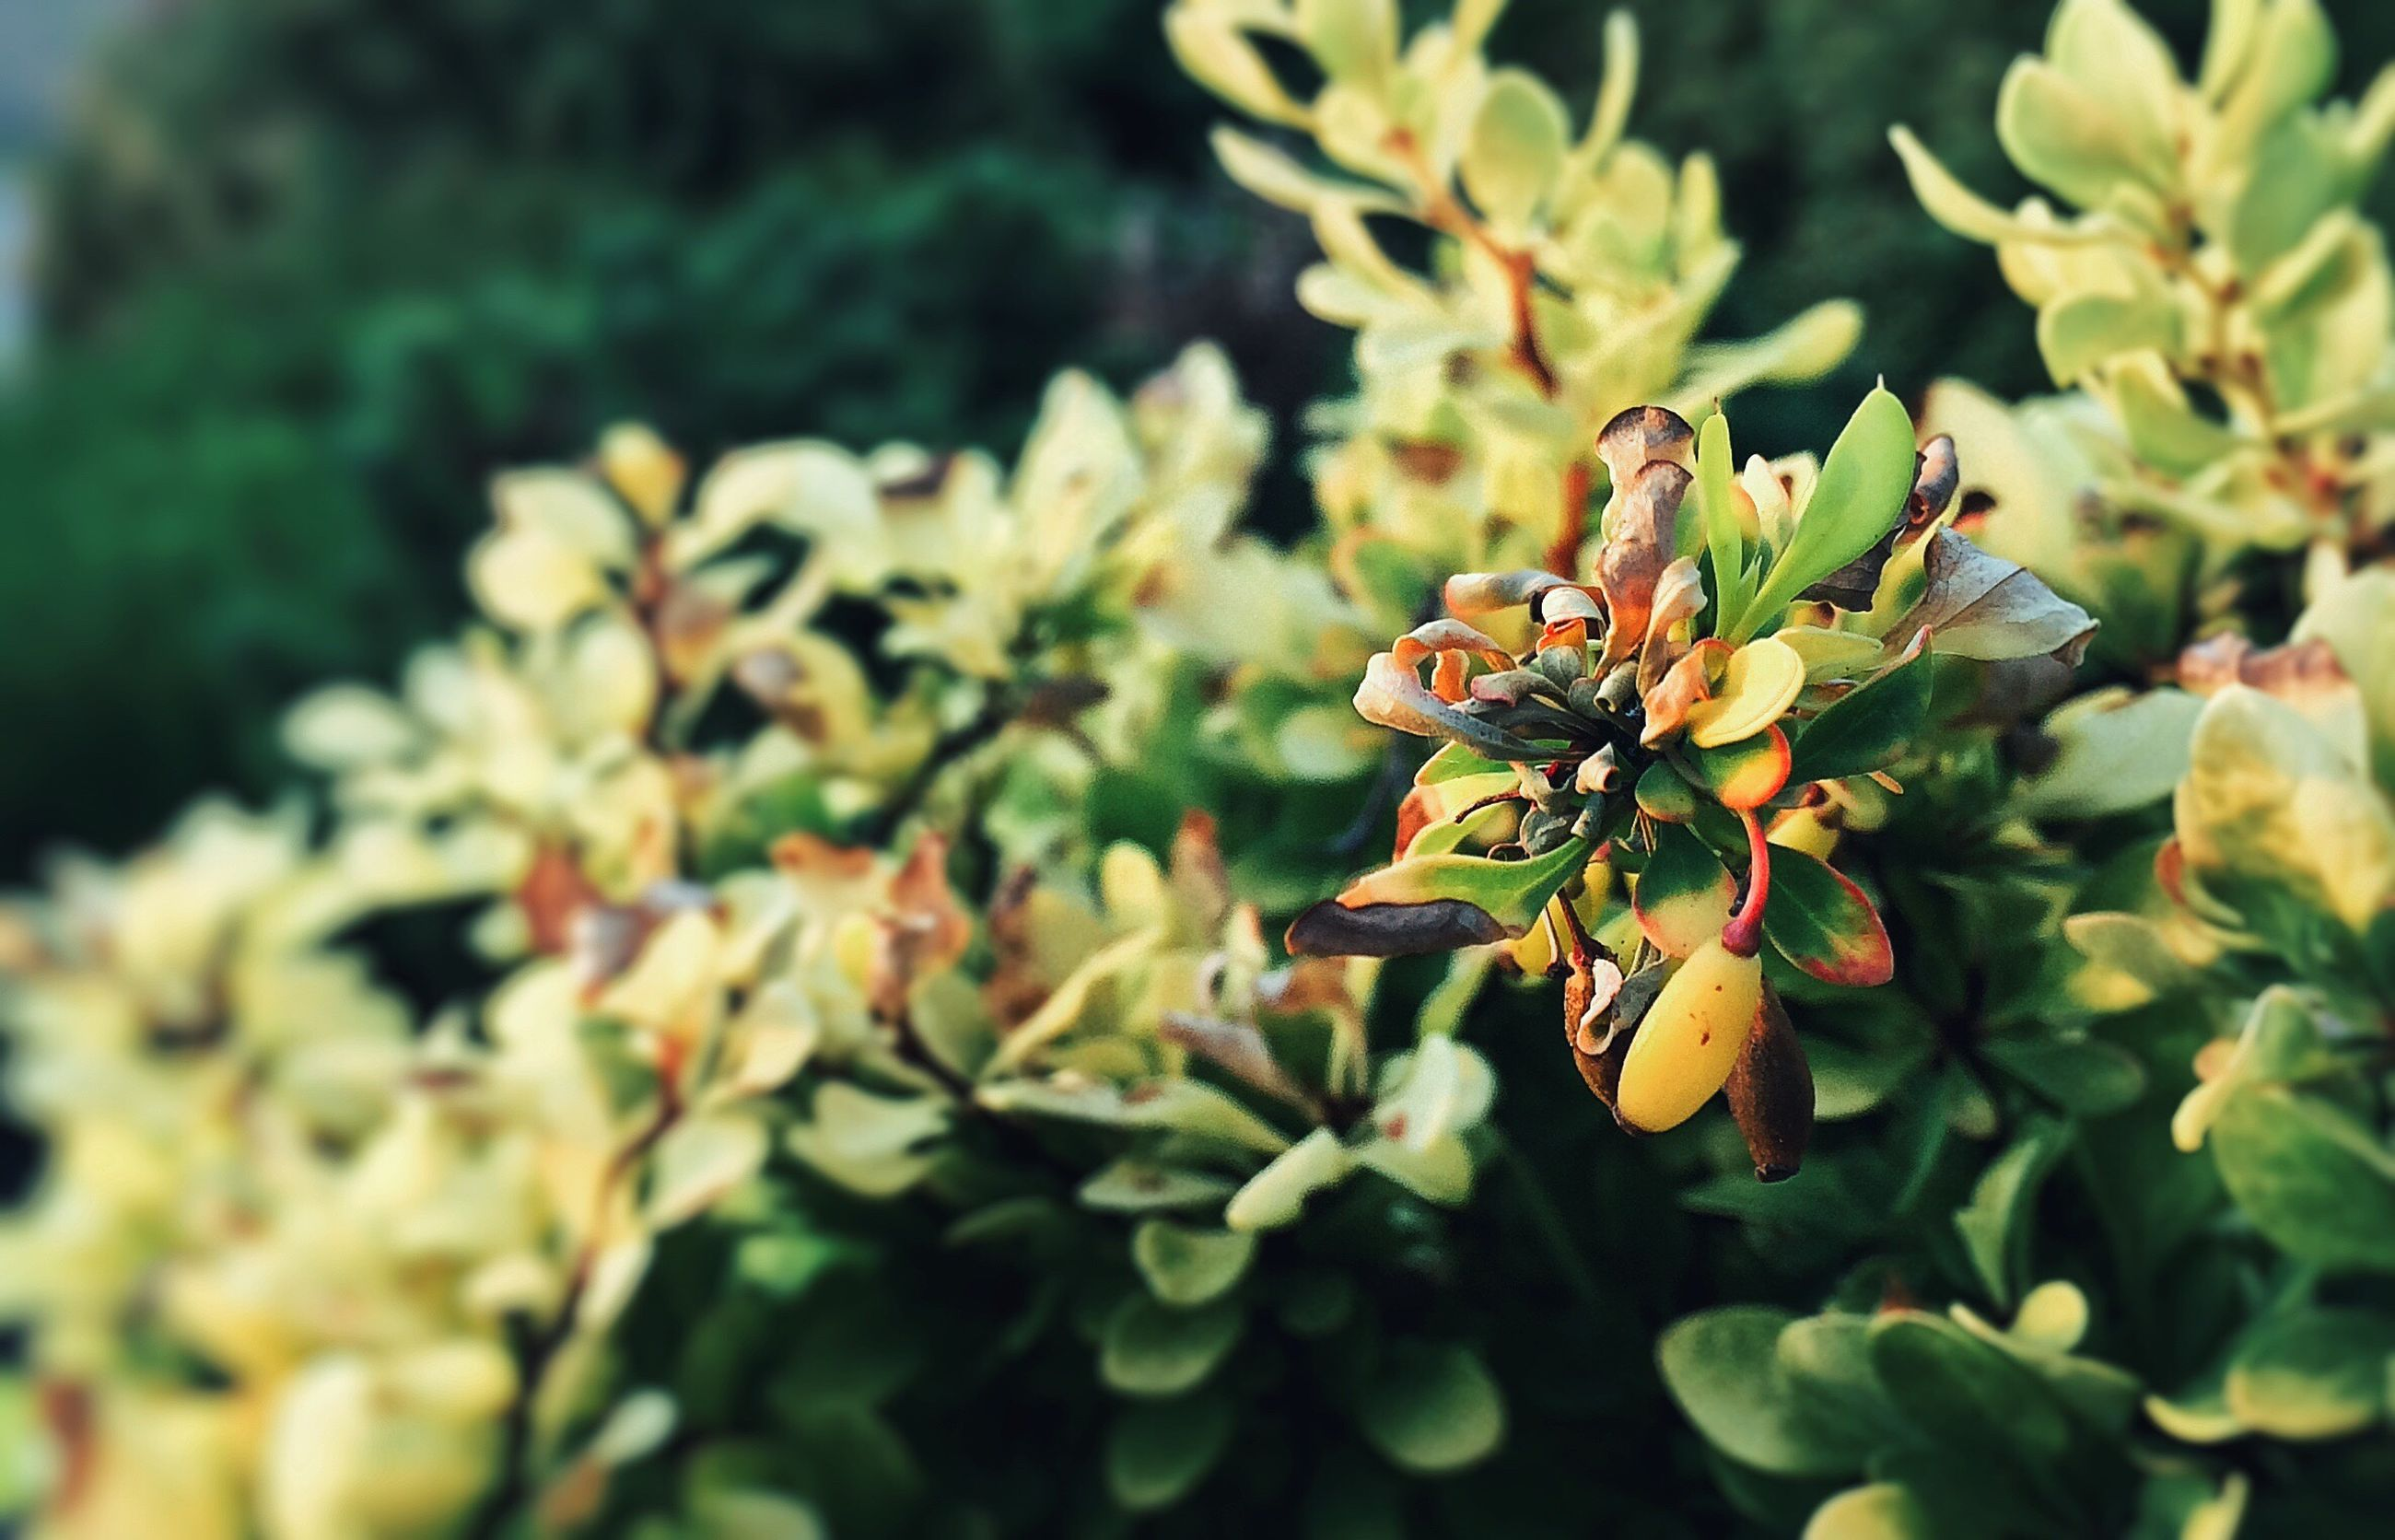 growth, leaf, focus on foreground, flower, nature, close-up, freshness, plant, beauty in nature, branch, selective focus, green color, fragility, day, outdoors, bud, tree, no people, stem, yellow